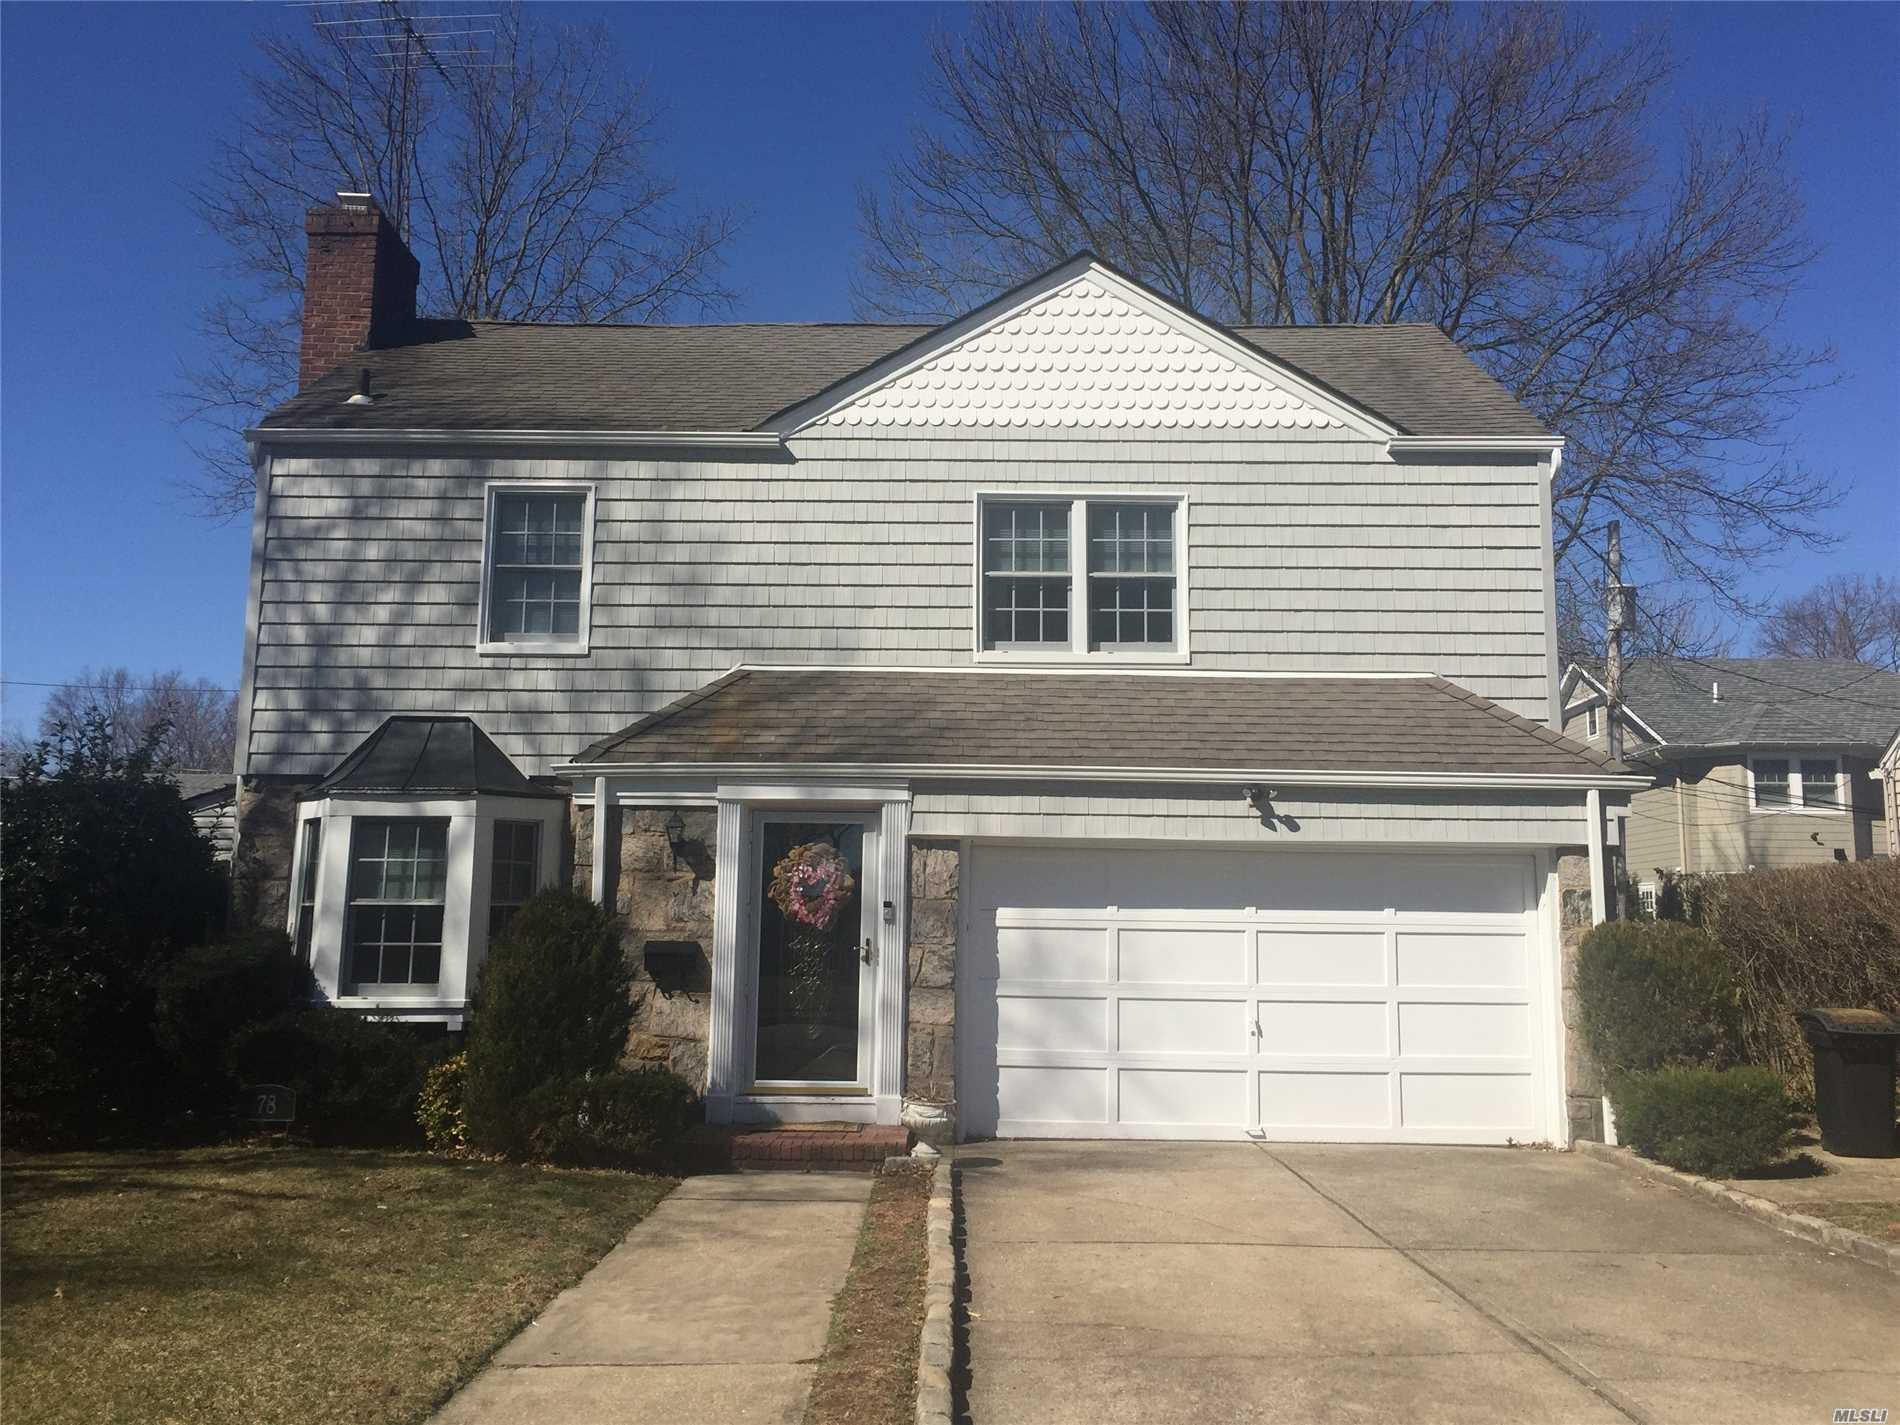 Charming Colonial Home on Great 80x100 Property. New Kitchen with Stainless Steel Appliances. New Full Bath on First Floor. Living Room with Wood Burning Fireplace, Formal Dining Room, and Den with Access to Backyard. 2-Car Garage. Four Bedrooms and Beautiful new Bath on Second Floor. Lots of Storage. Small dogs up to 20lbs. allowed.